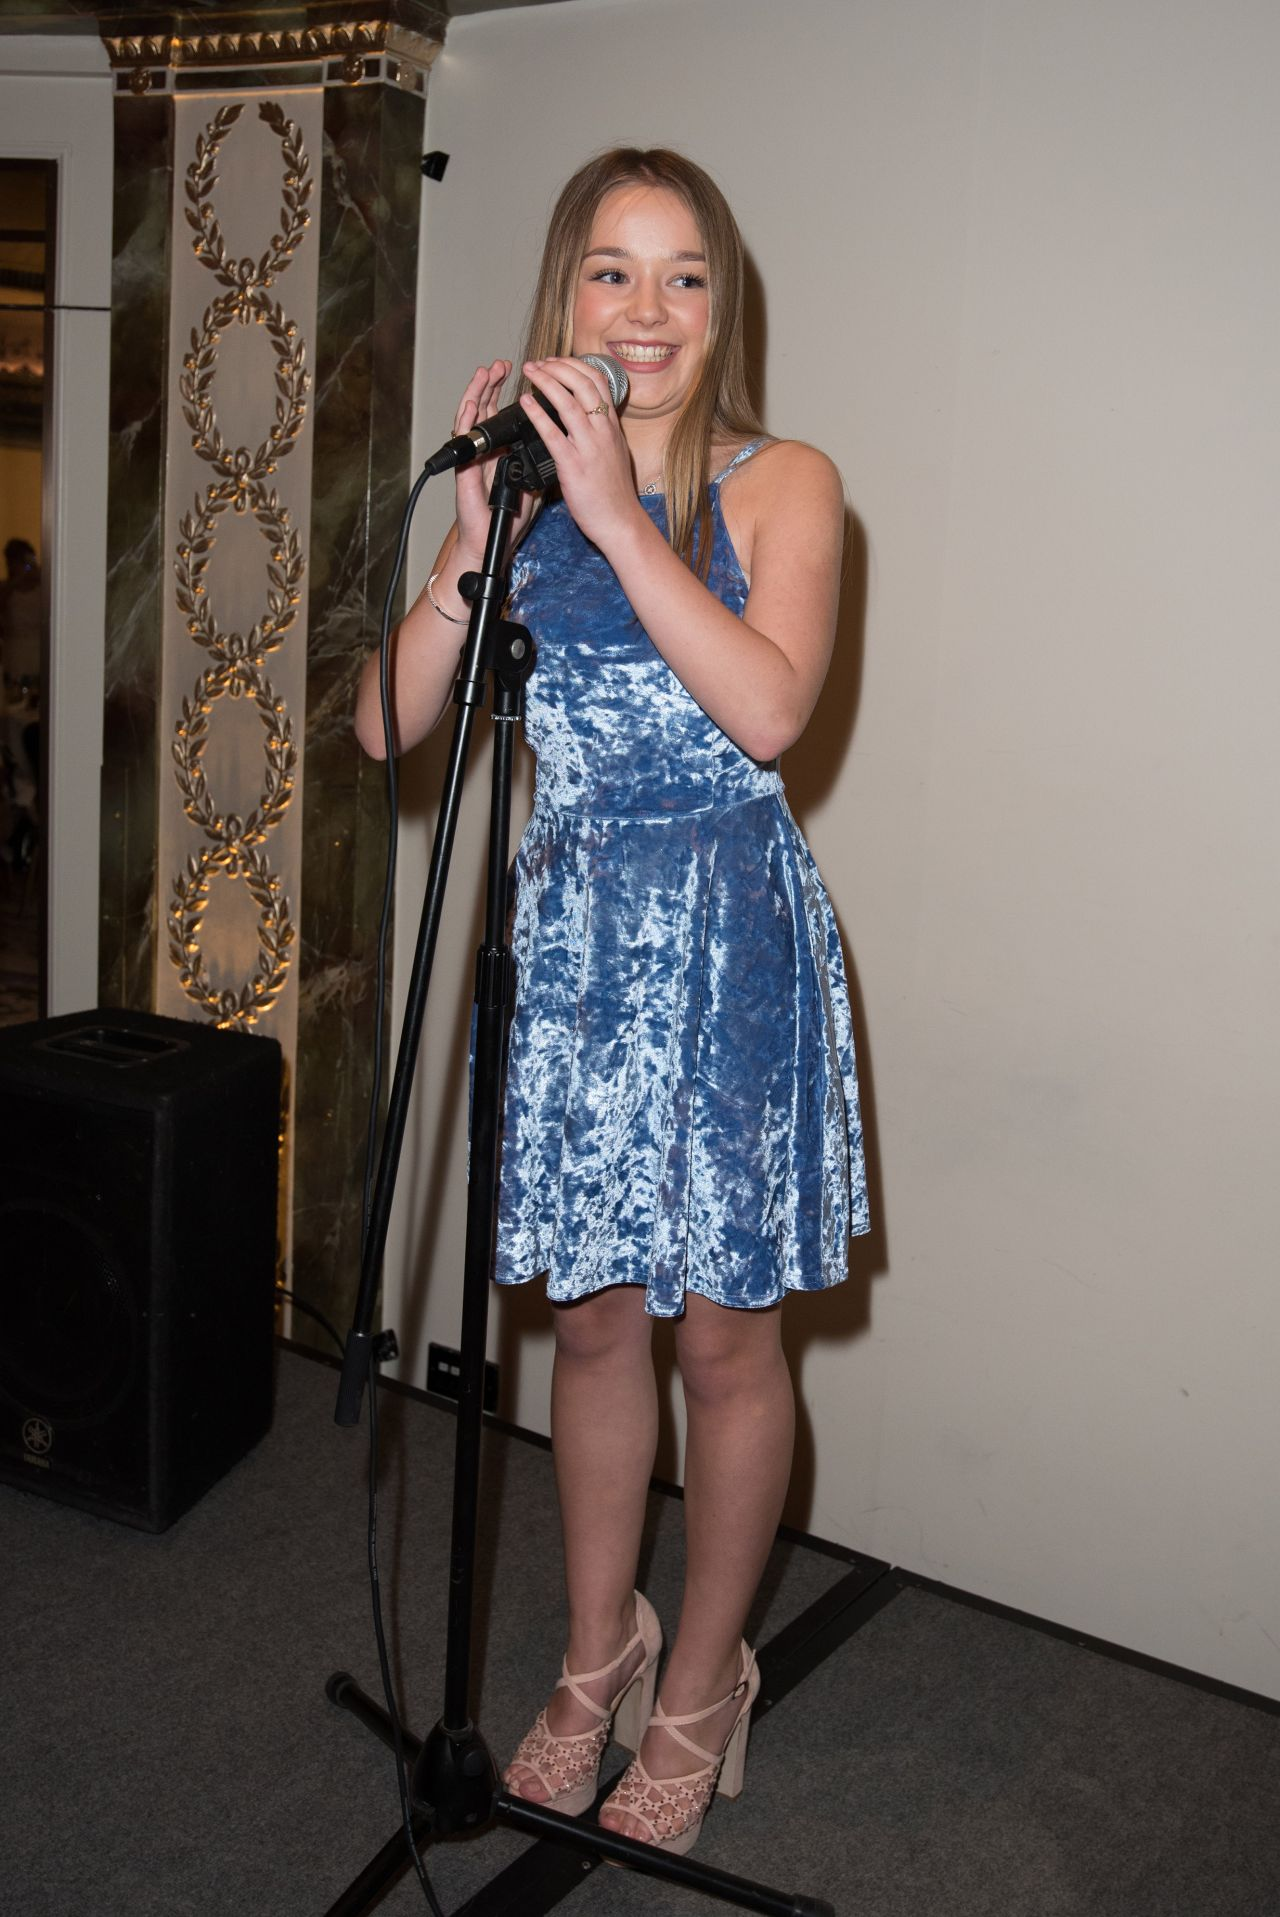 connie-talbot-shooting-star-chase-children-s-hospice-at-the-dorchester-london-05-26-2017-7.jpg